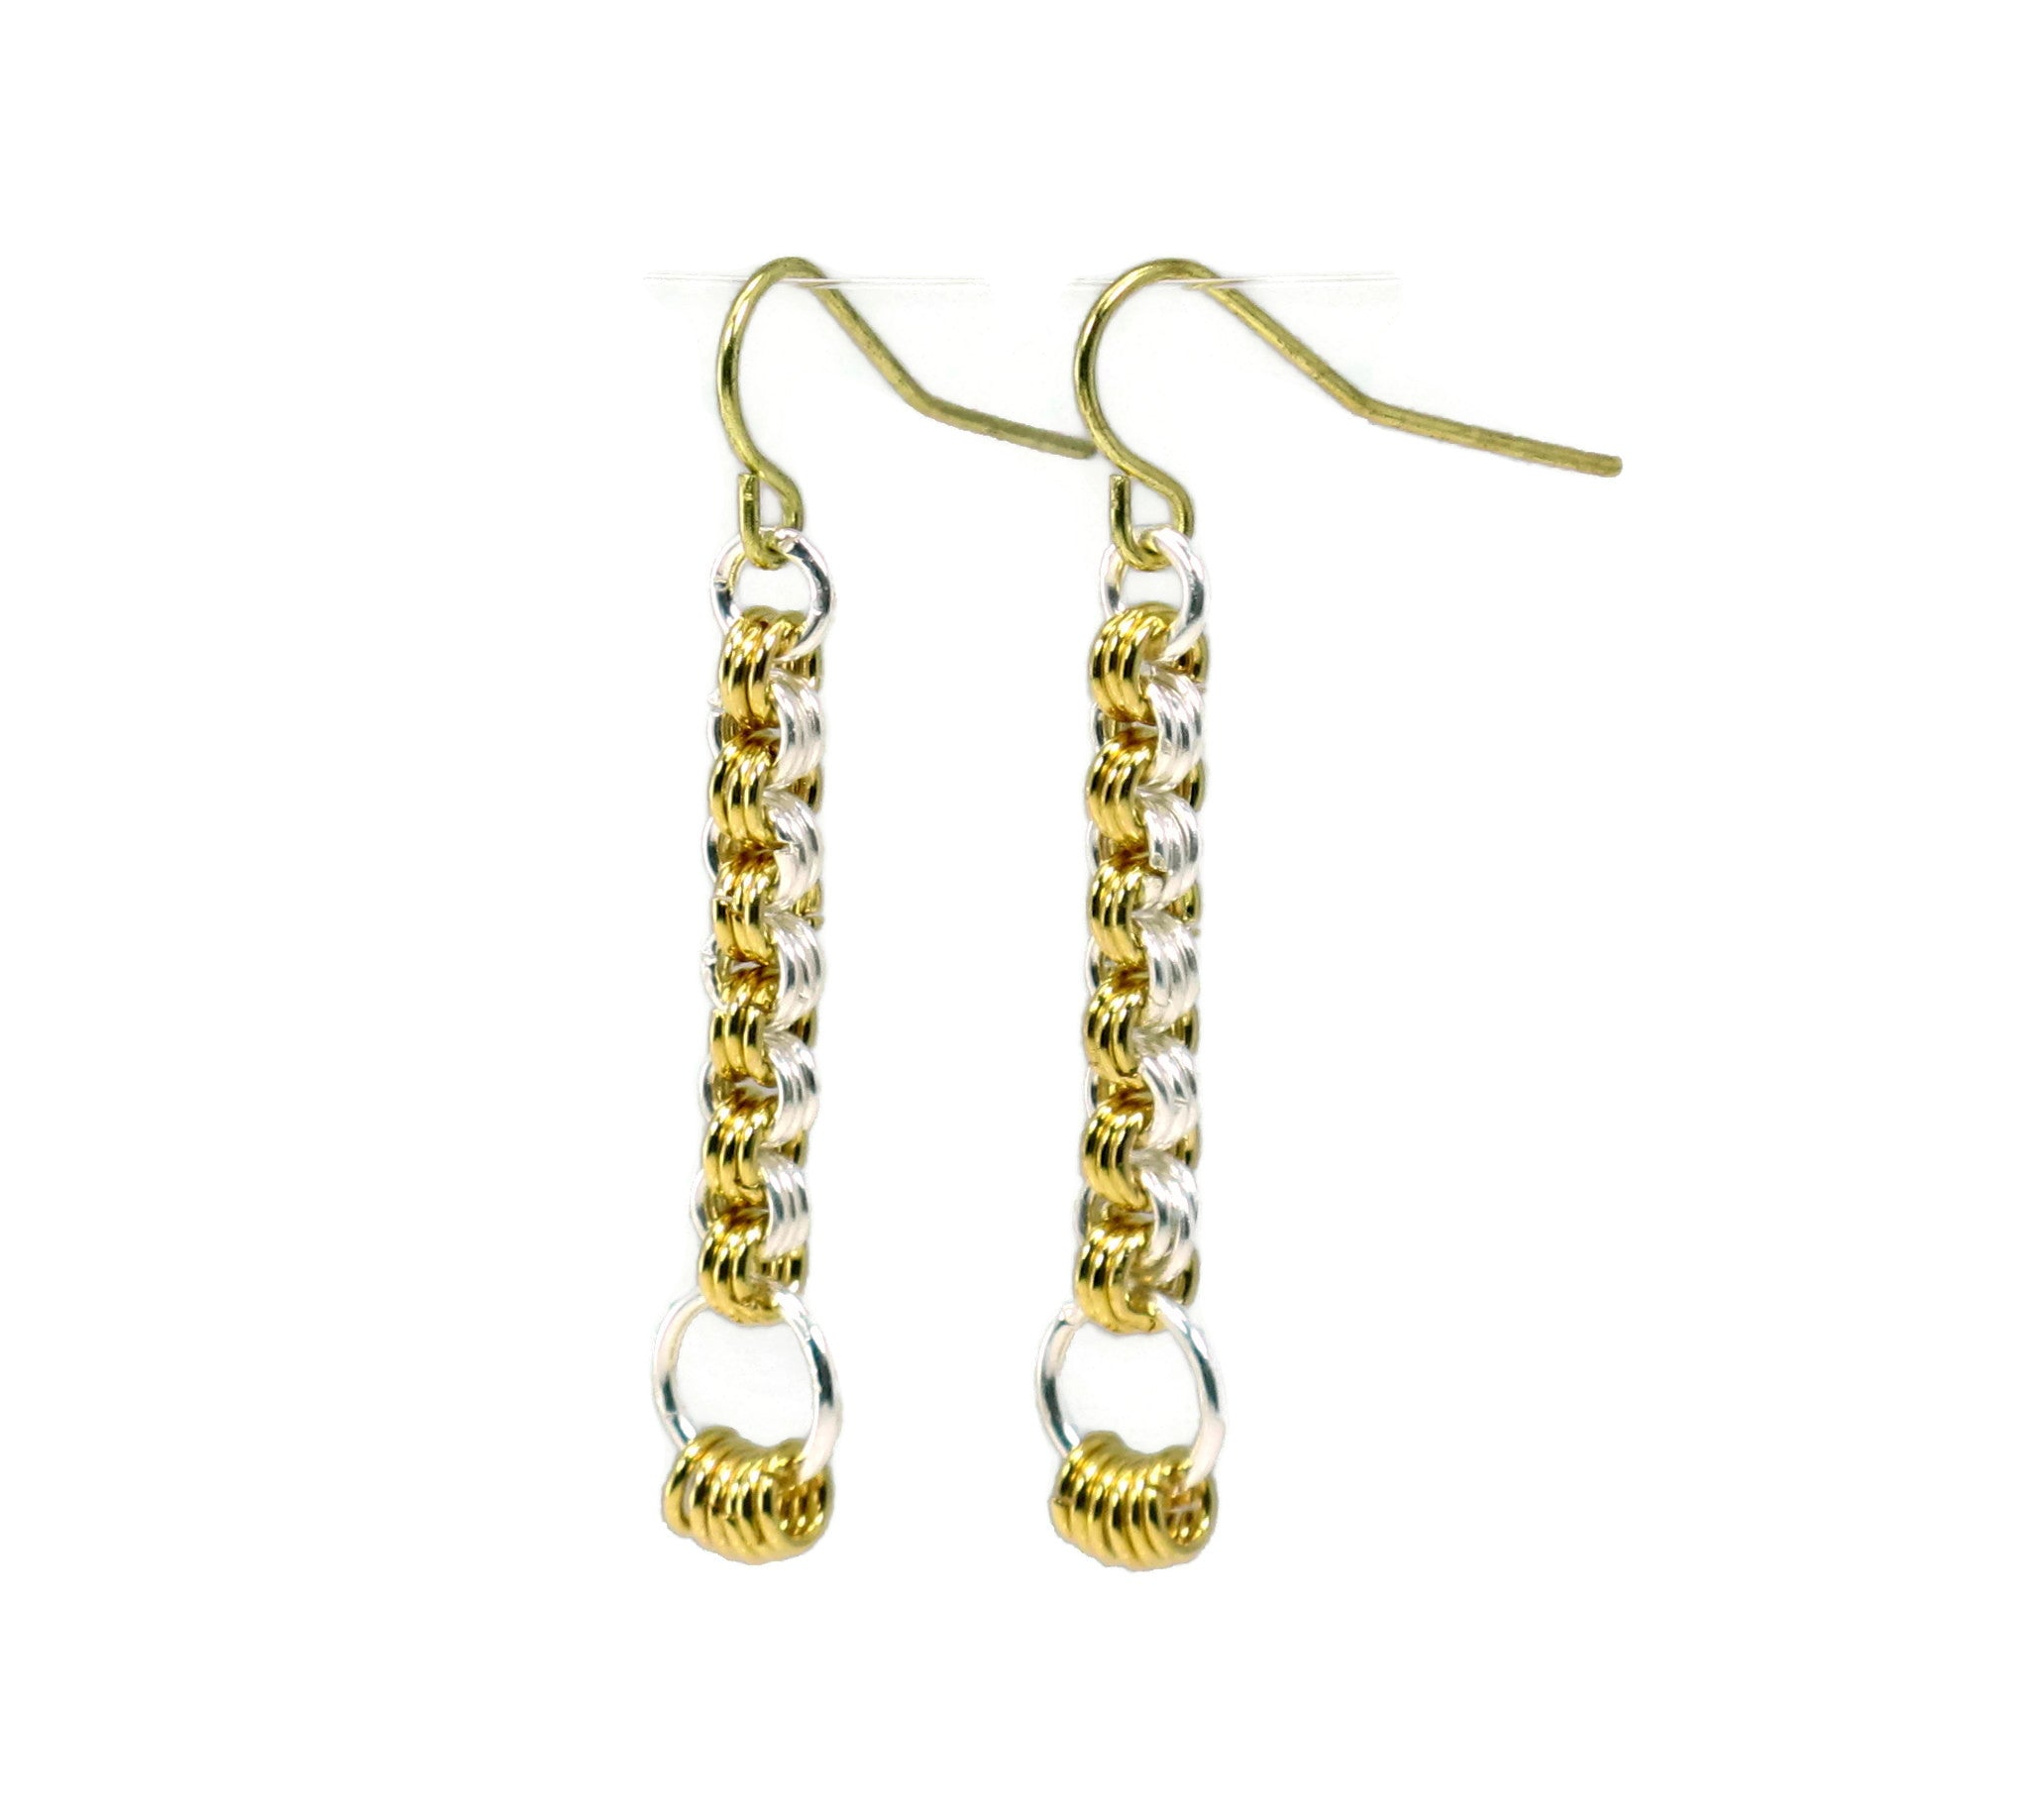 DIY Chain Mail Silver and Gold Pillar Earrings Kit